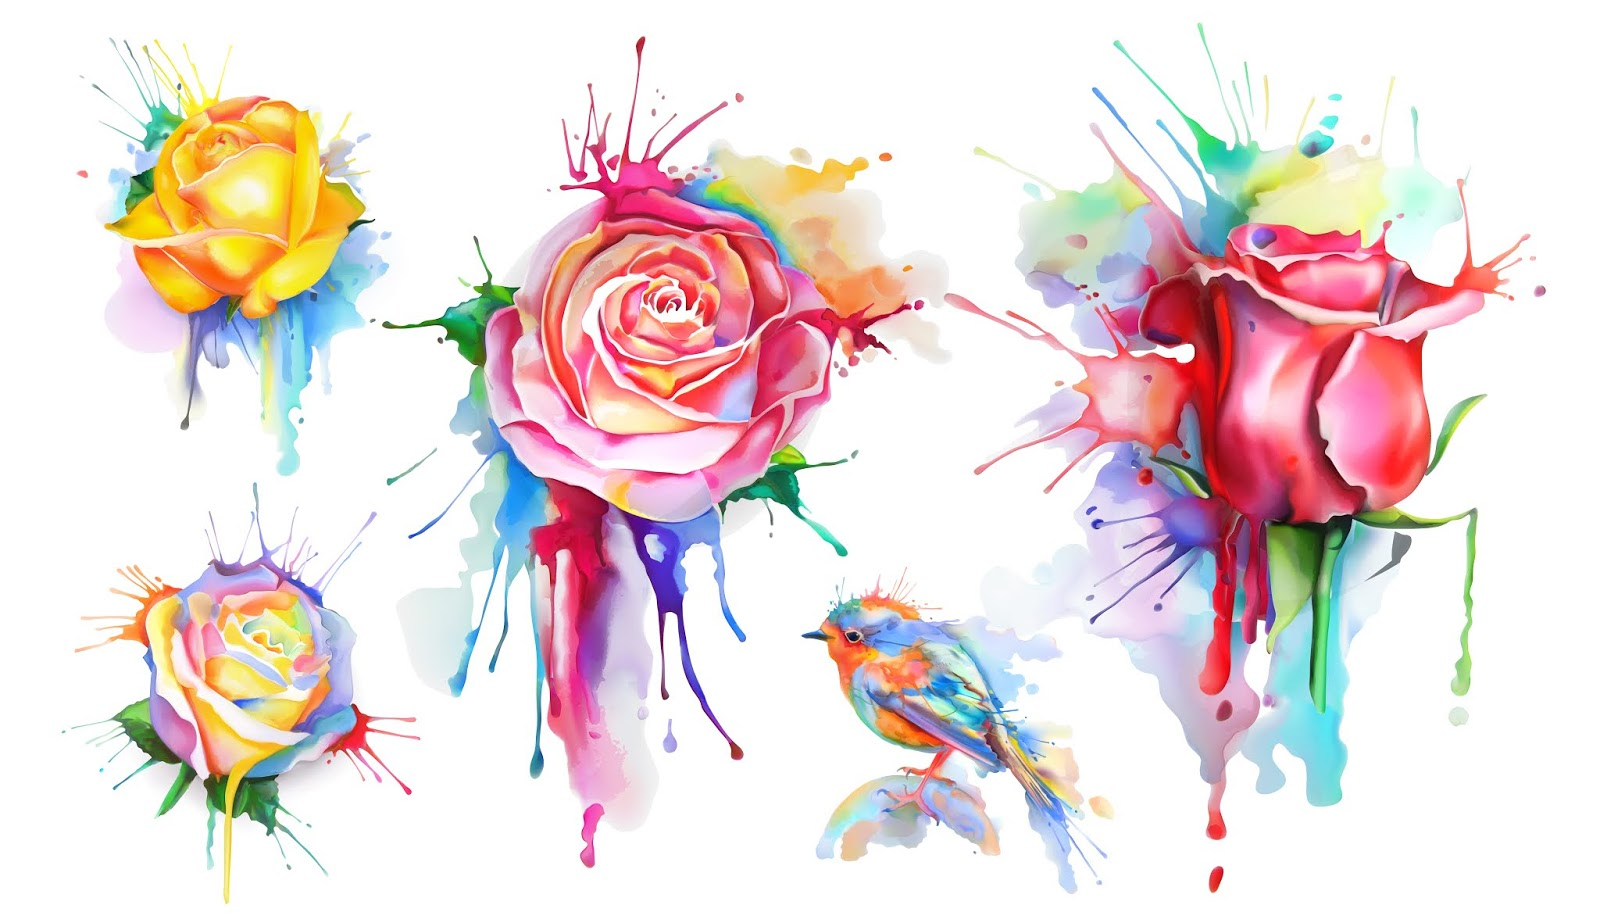 Watercolor Roses Set Vector Icons Free Download Vector CDR, AI, EPS and PNG Formats